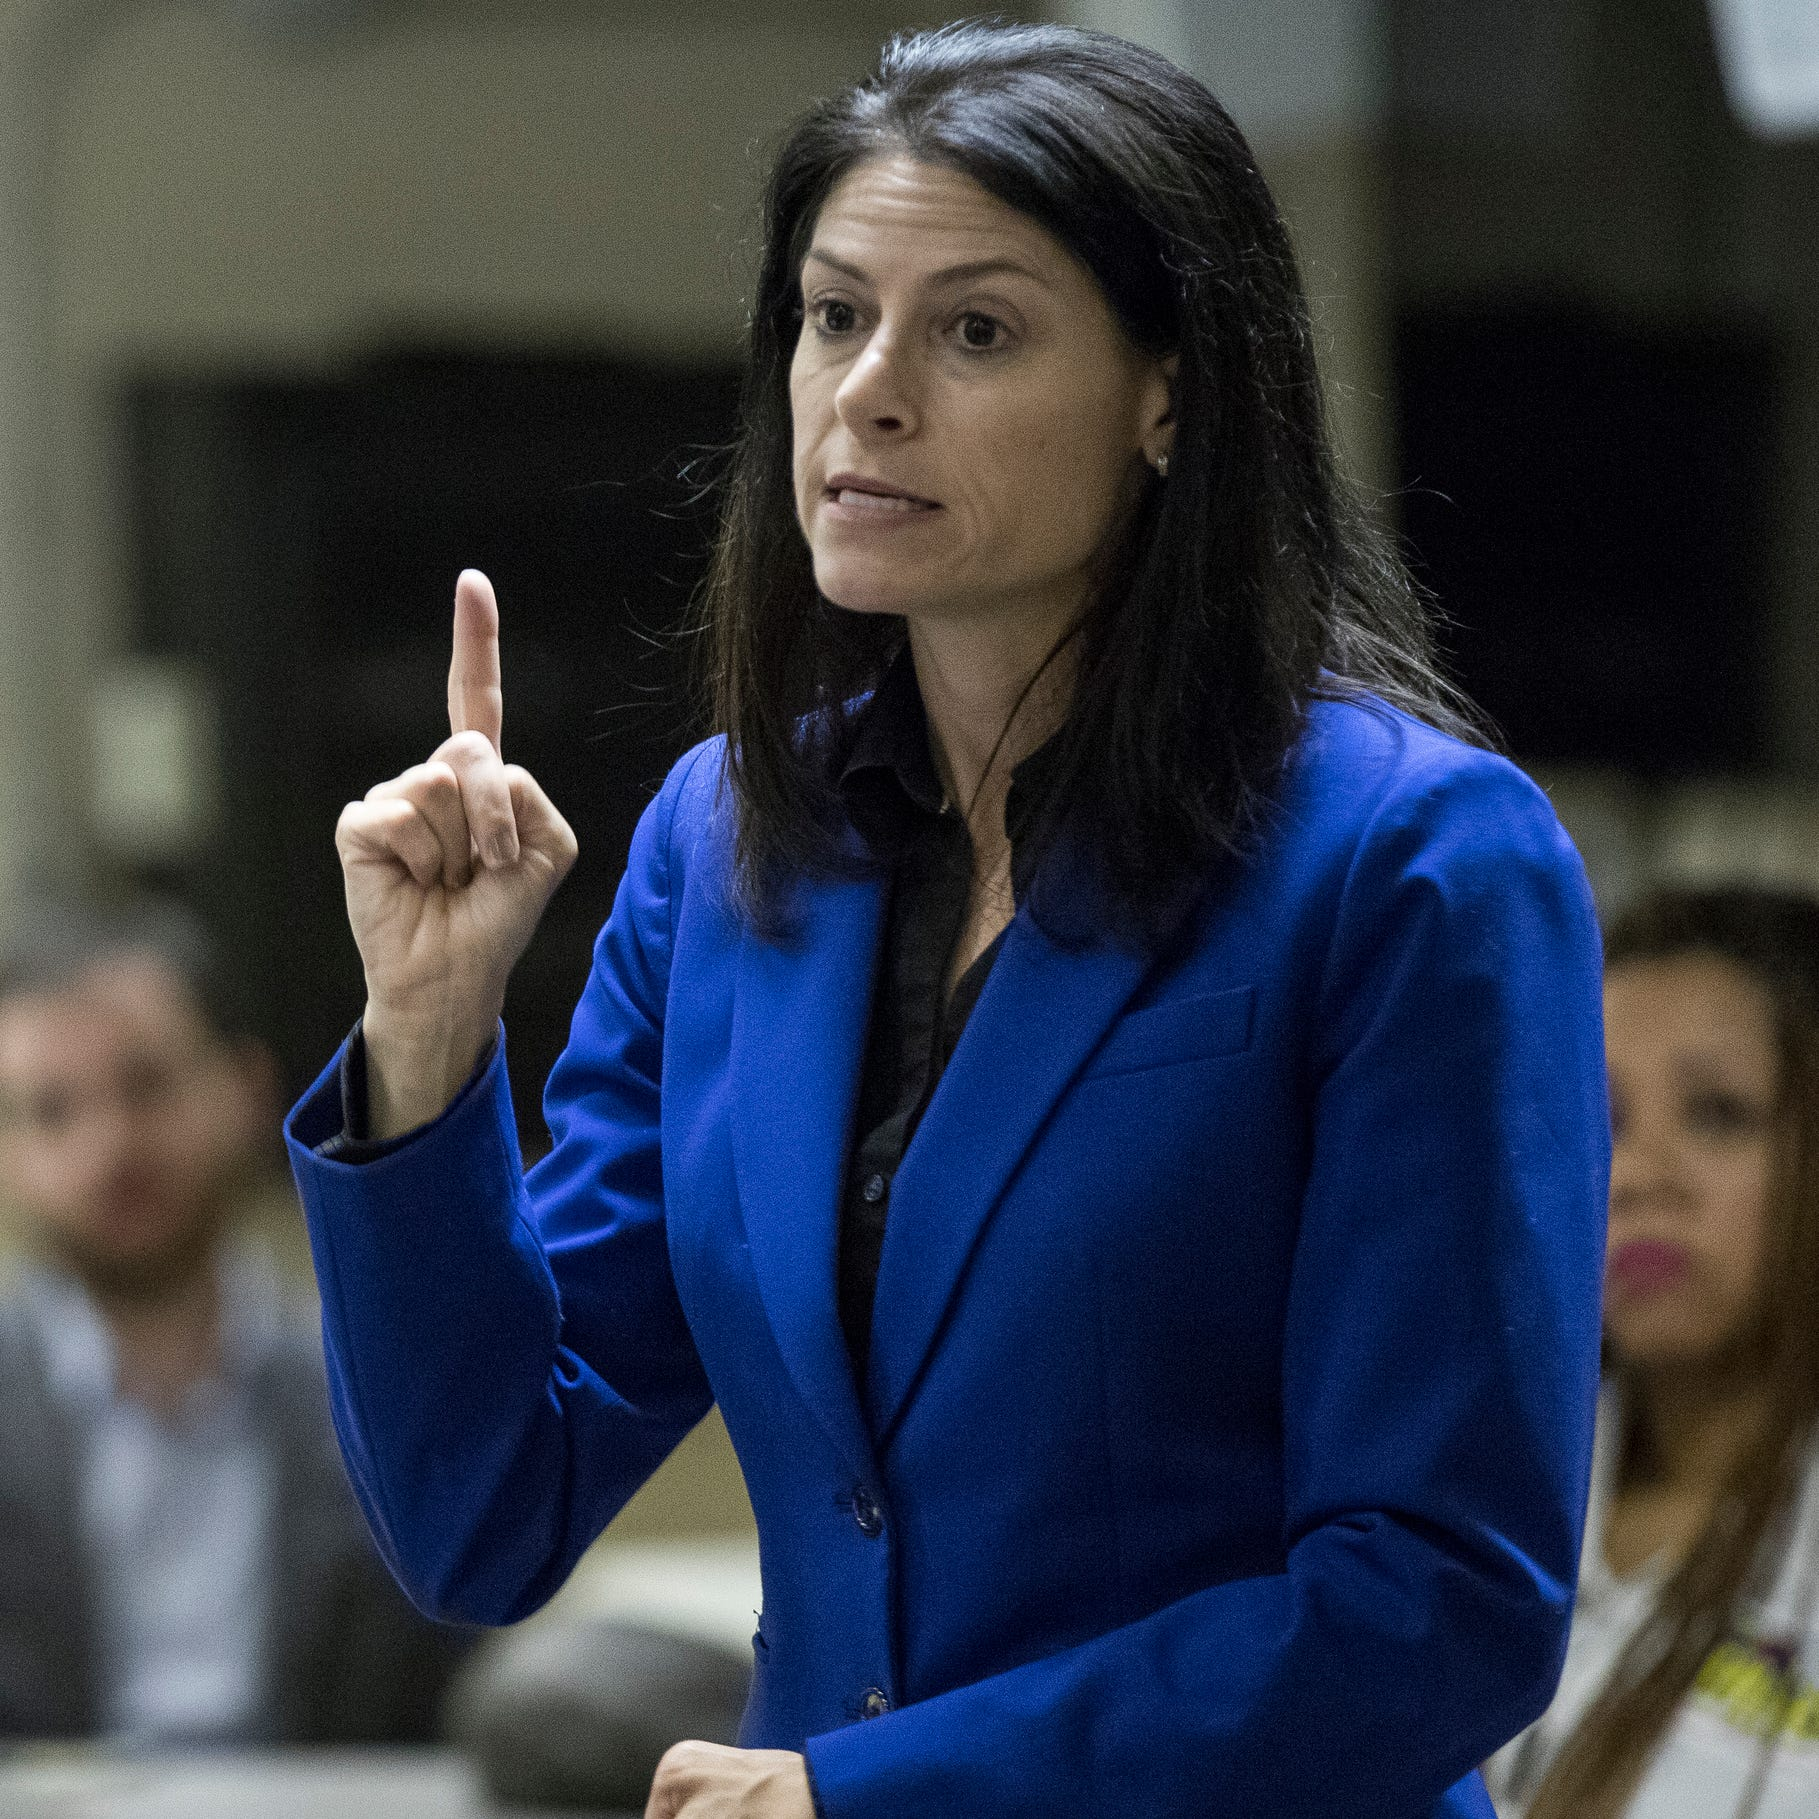 Endorsement: Dana Nessel for Michigan attorney general